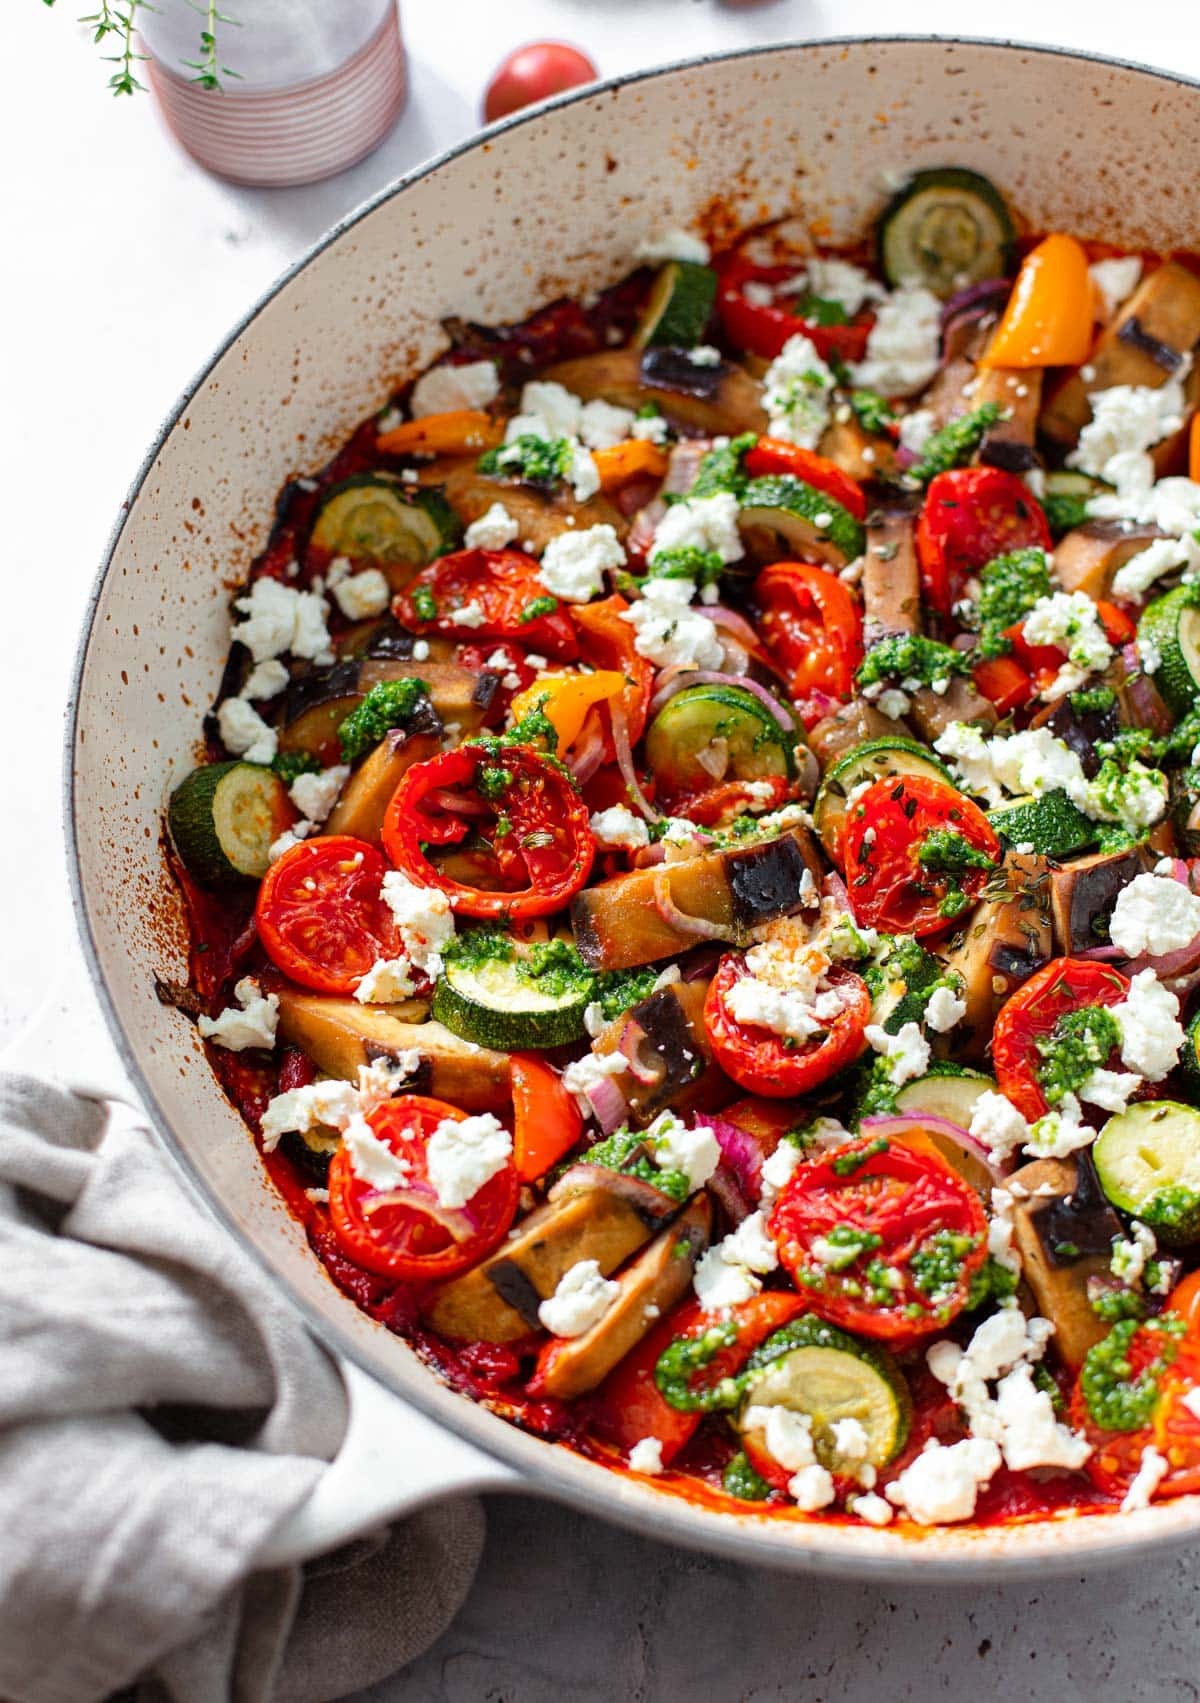 A round white casserole dish with bake Mediterranean vegetables for ratatouille, topped with crumbed goat cheese.